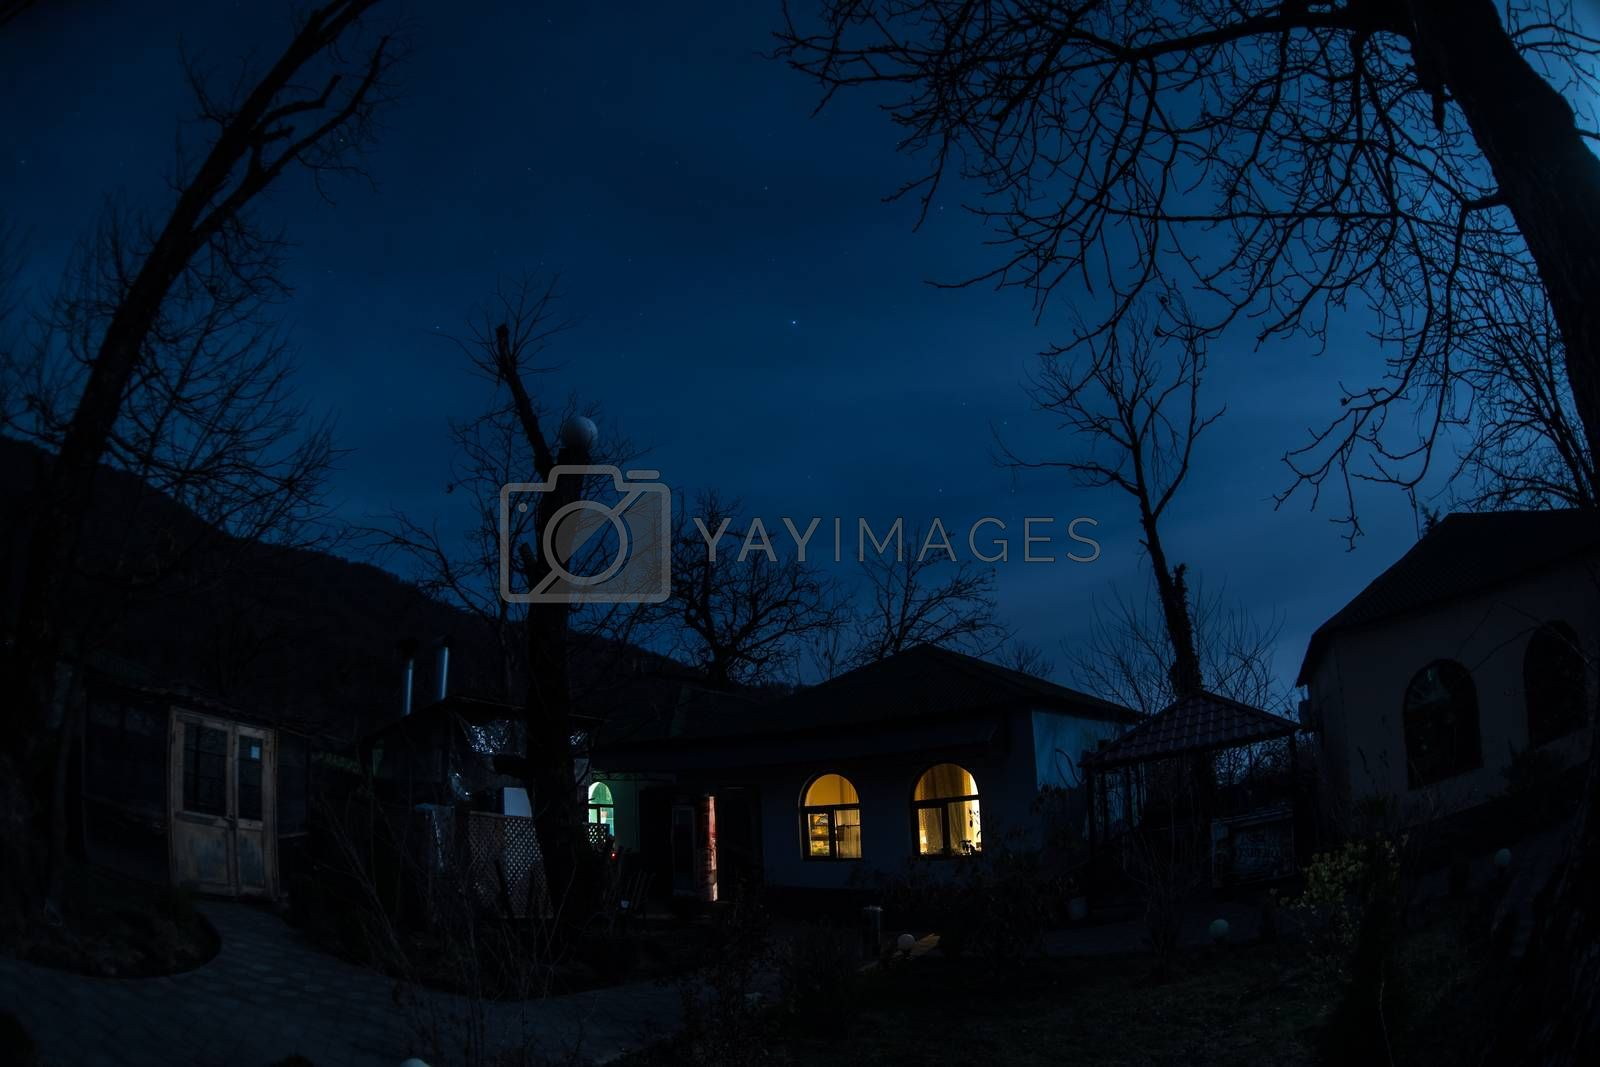 Full moon over quiet village at night. Beautiful night landscape of mountain village under the moonlight. Azerbaijan nature. Long exposure shot